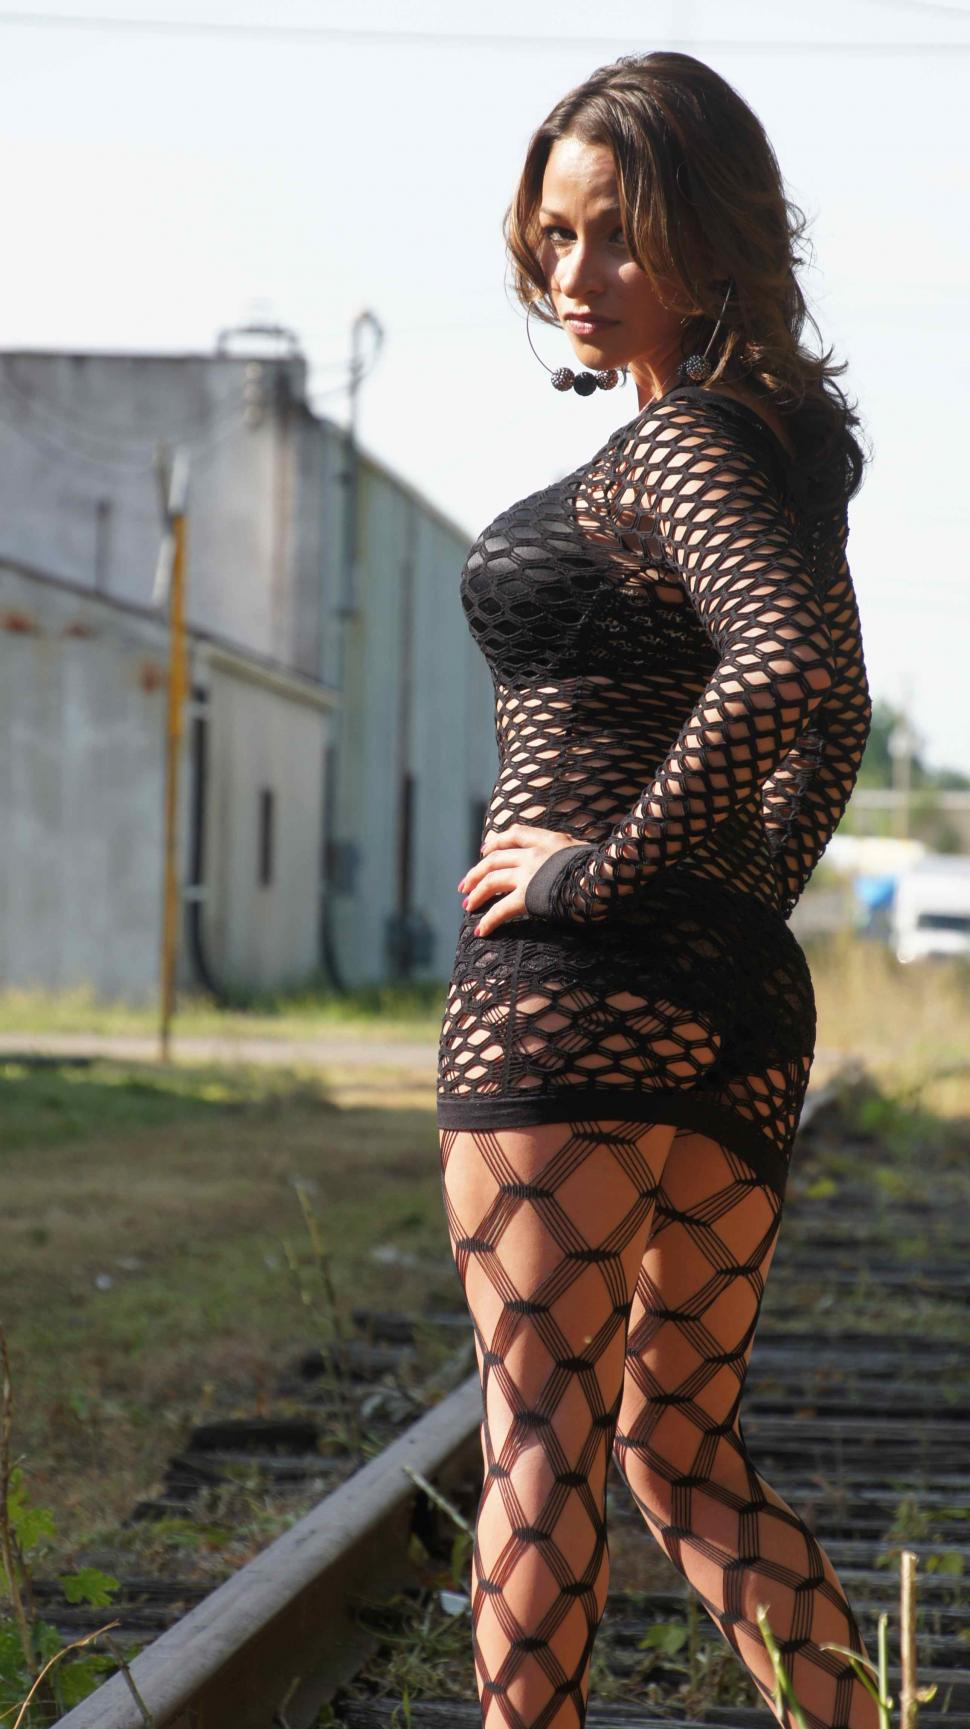 Download Free Stock Photo of Woman in Fishnets Stands on Train Track